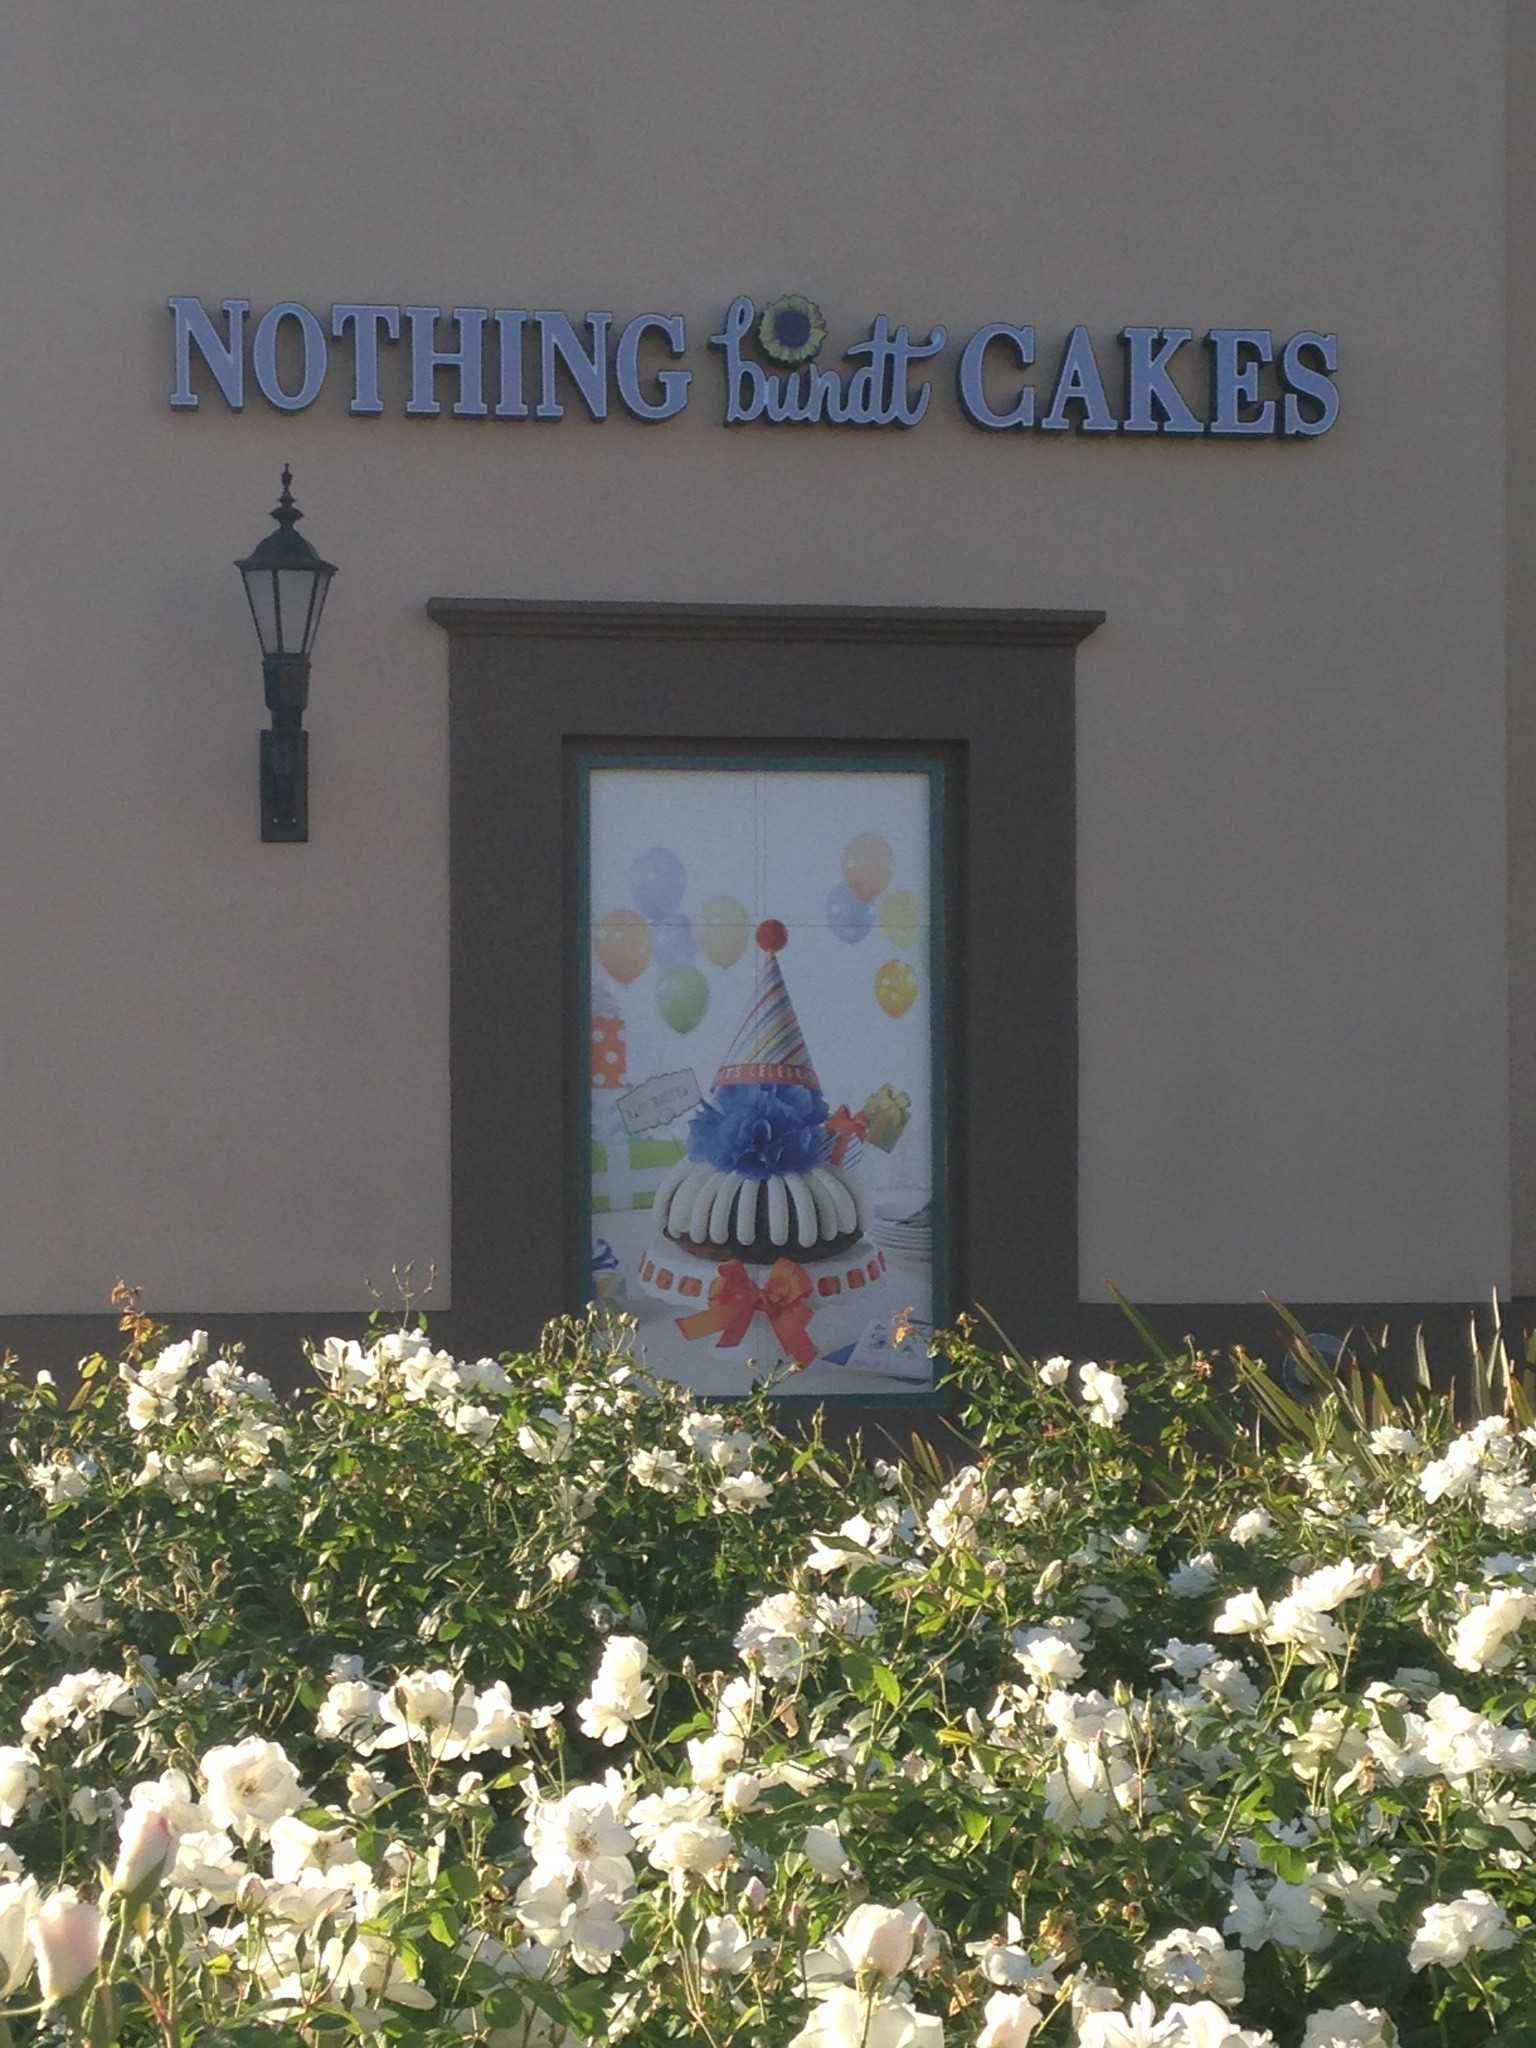 """""""Nothing Bundt Cakes"""" is located on South Victoria Avenue. Credit: Julia Fickenscher/The Foothill Dragon Press"""